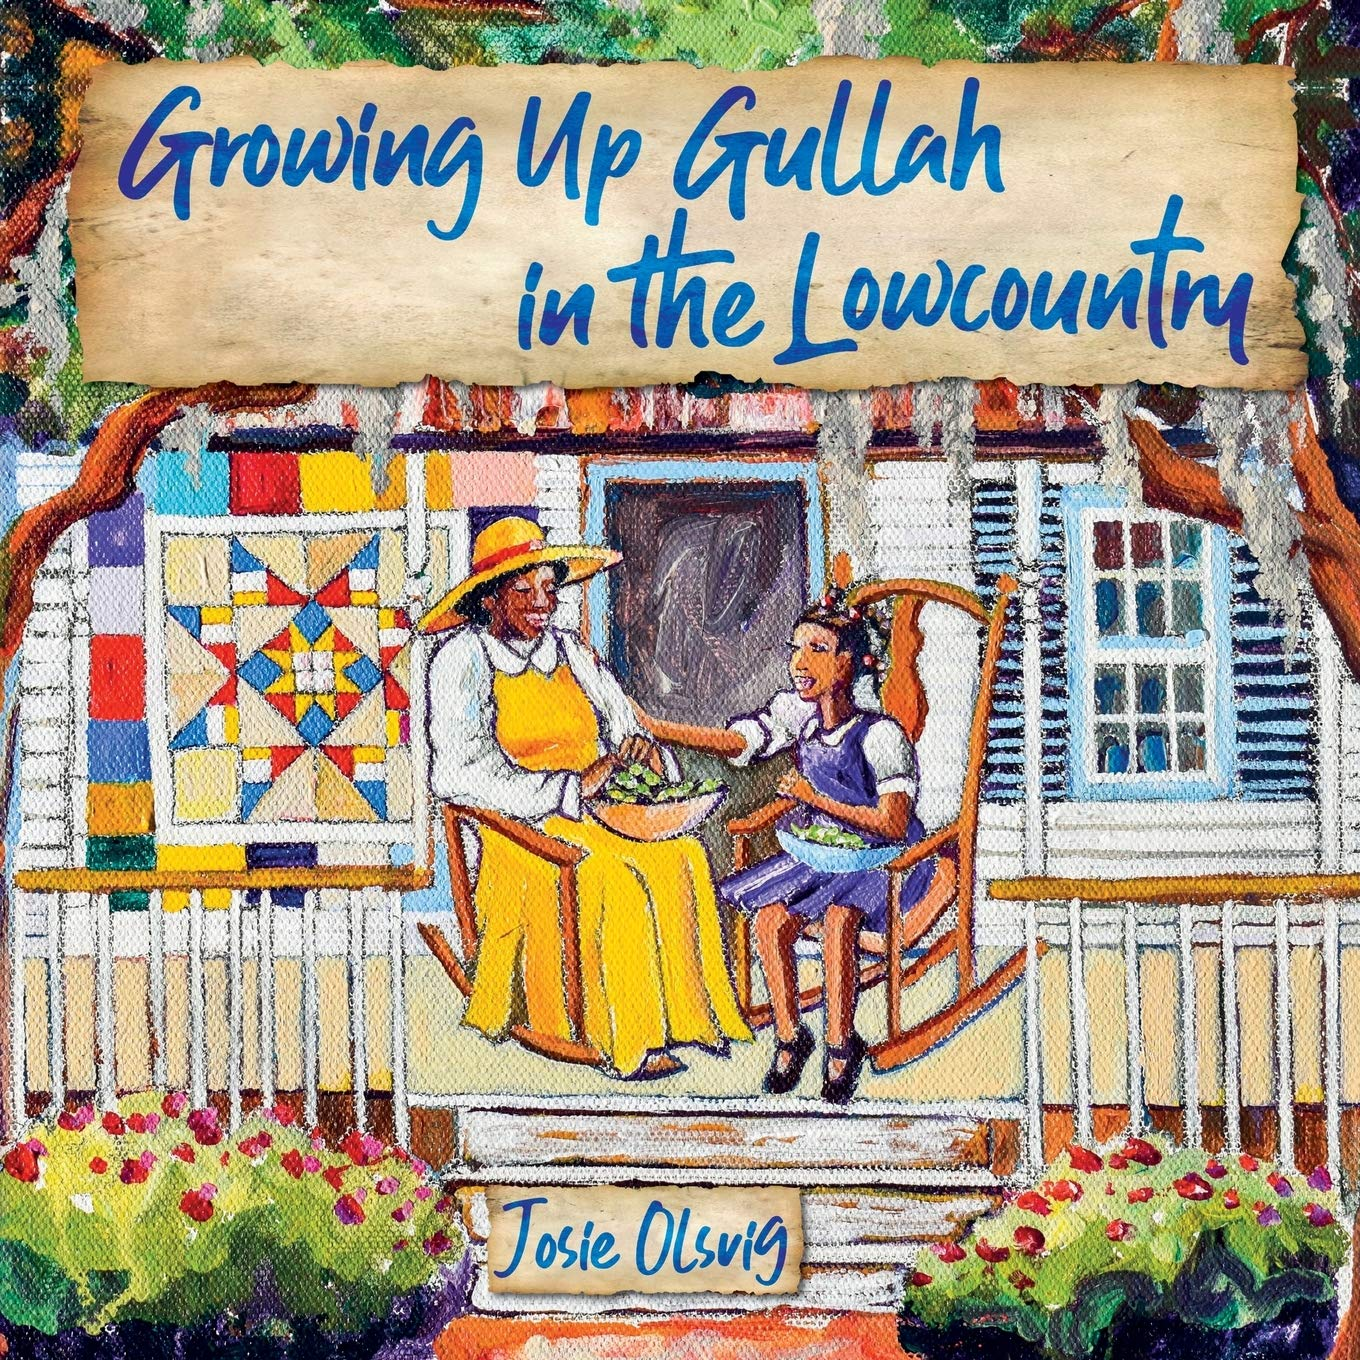 91HpDomiEjL Southern Heritage: Gullah Books To Add To Your Home Library